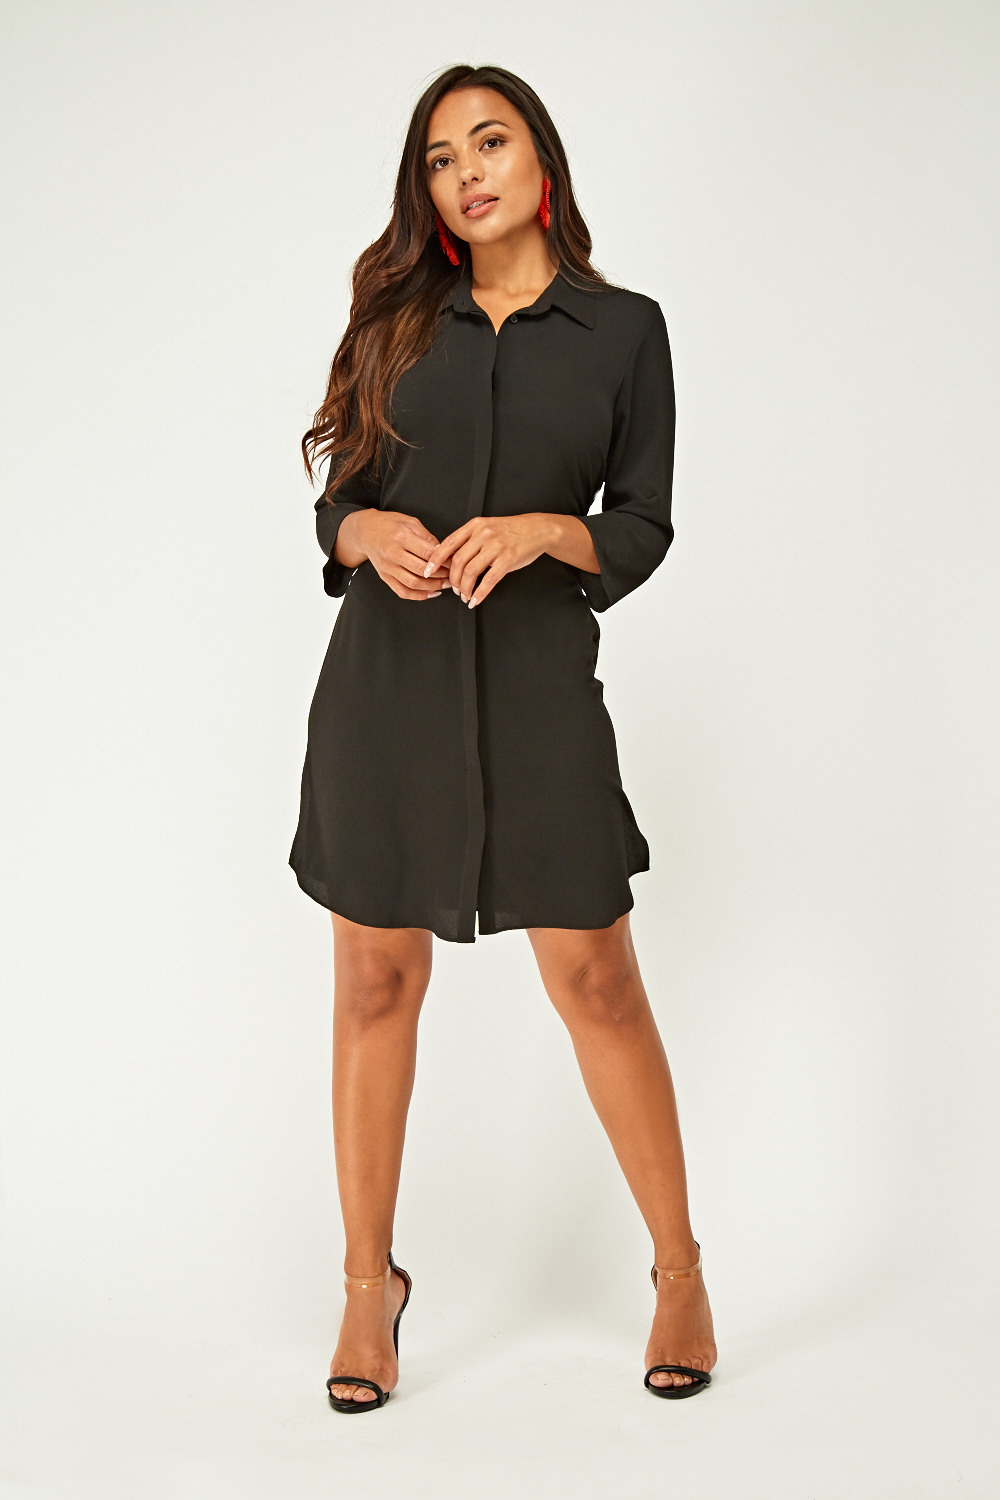 3589be569f Tie Up Sheer Shirt Dress - Just £5